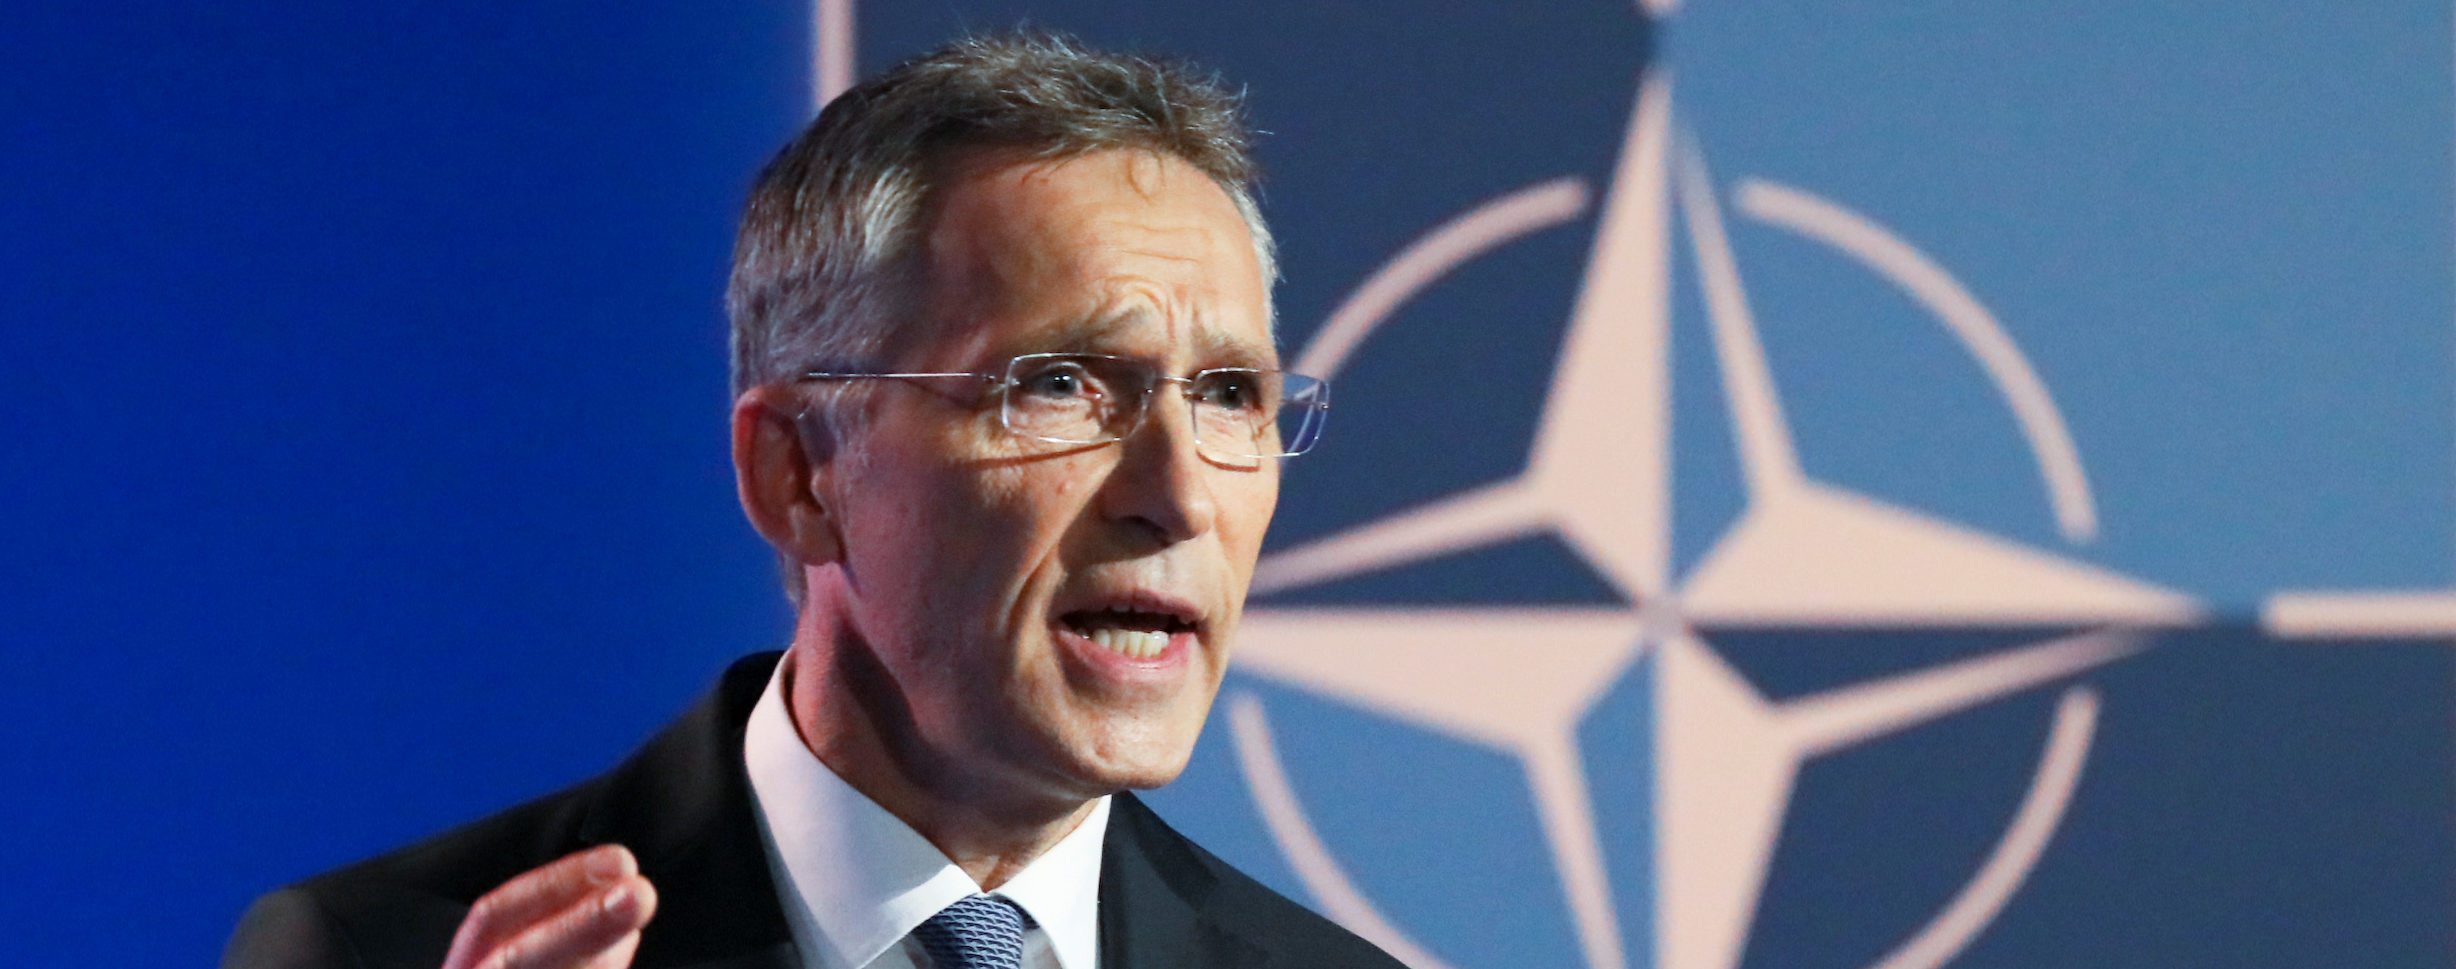 NATO Secretary General Jens Stoltenberg gestures as he gives a news conference ahead of a summit that will gather leaders of the 29 alliance members in Brussels, Belgium, July 10 2018. REUTERS/Reinhard Krause